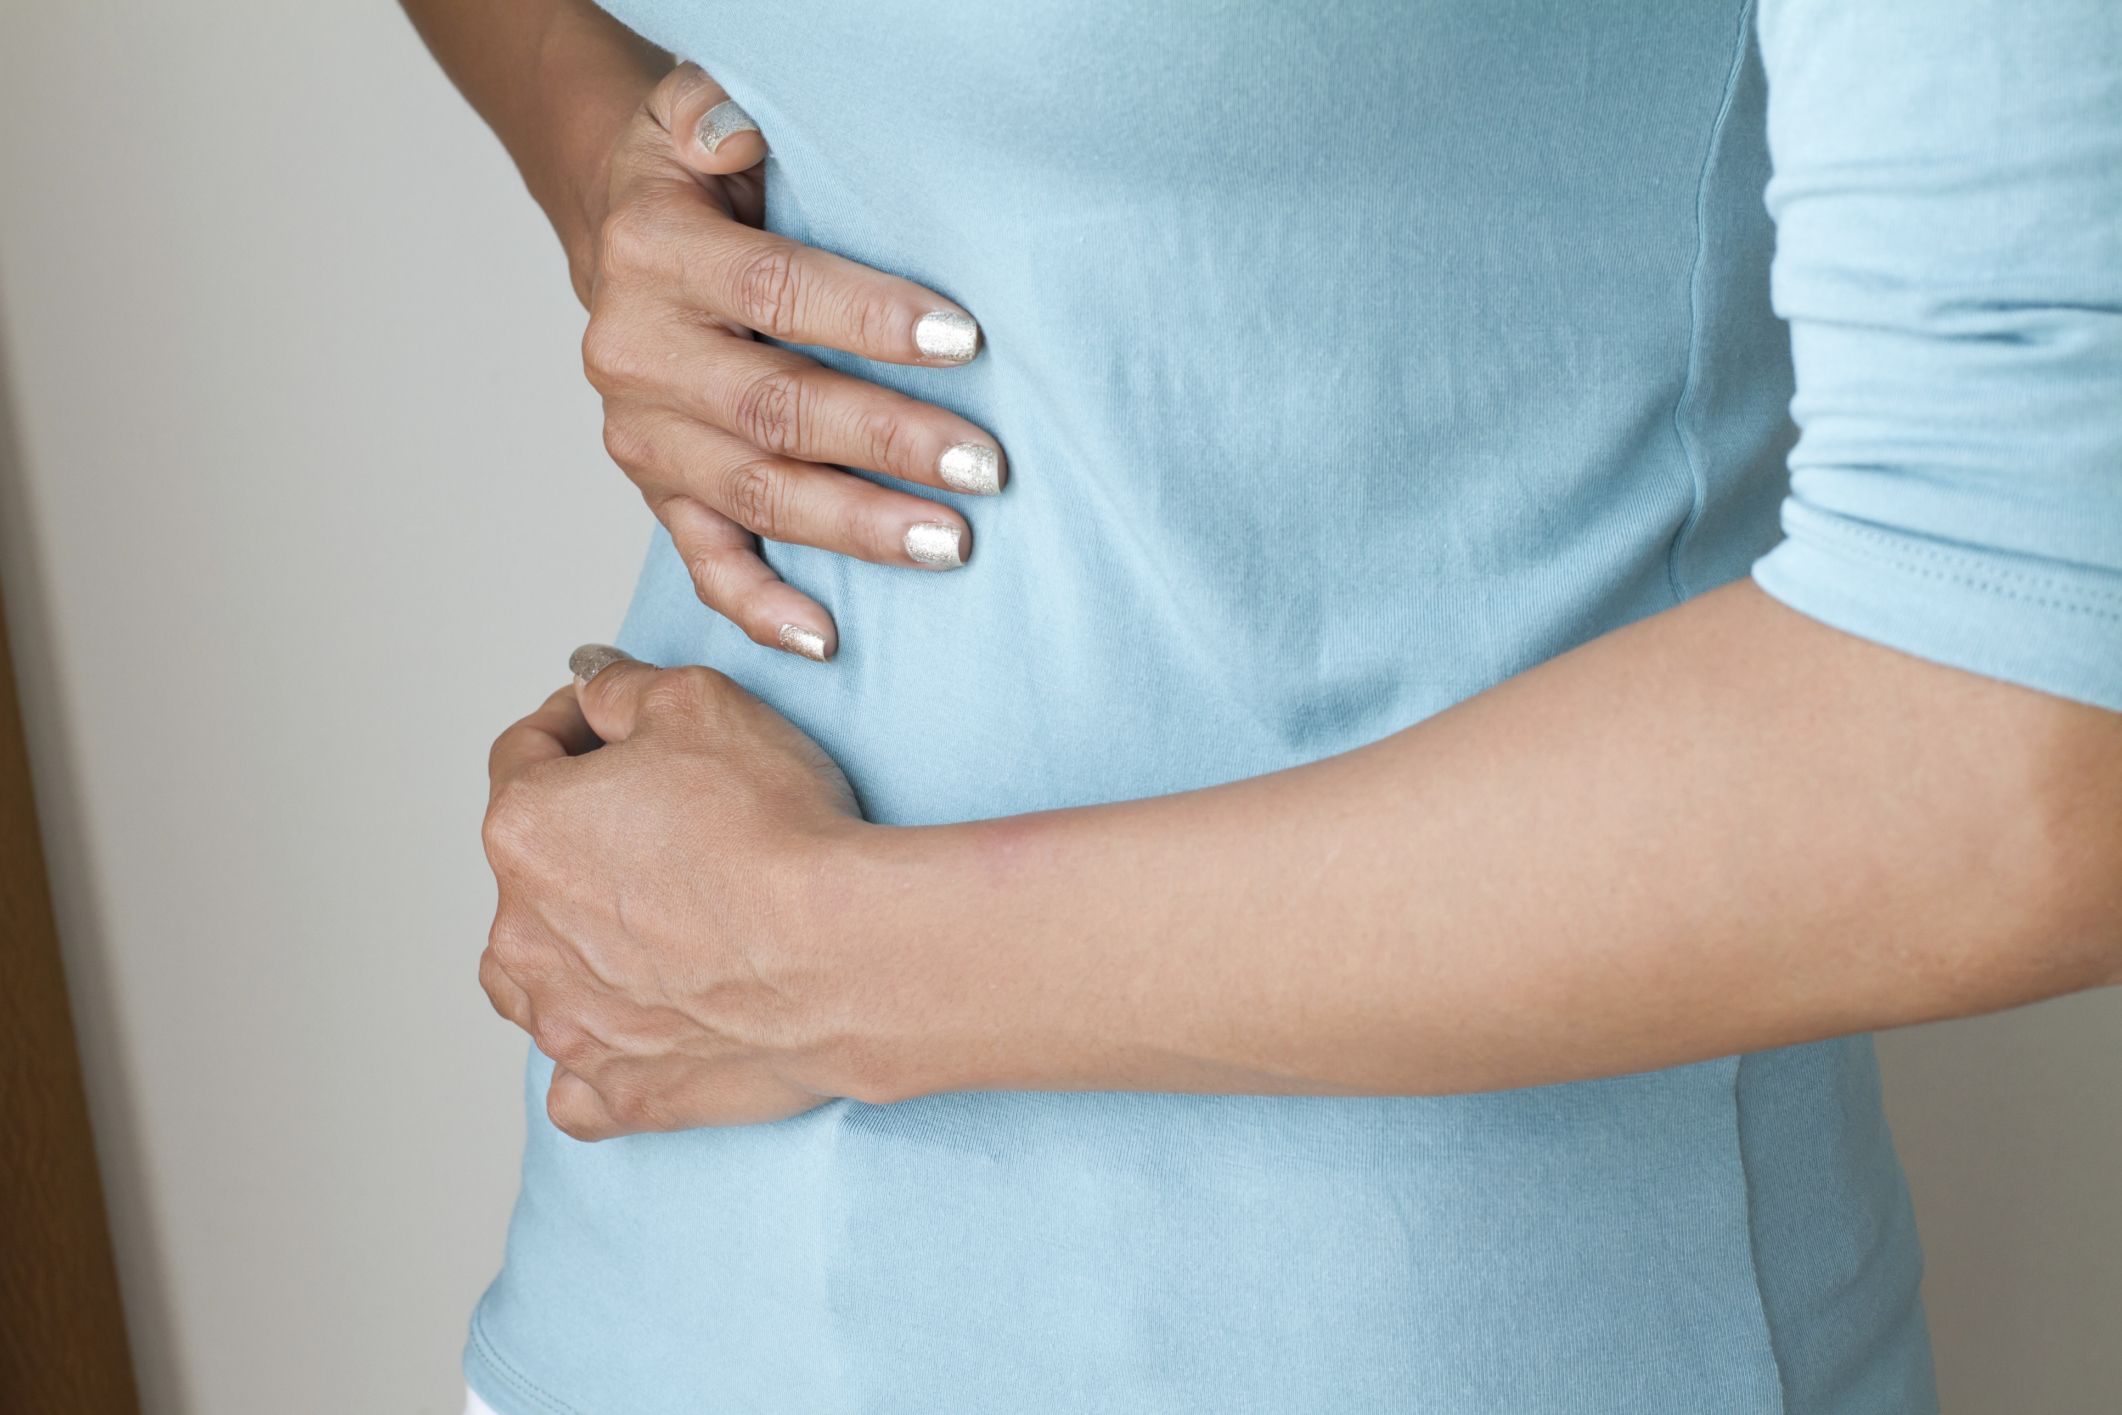 Cutting pain in the lower abdomen during pregnancy: causes. Pulling pain in pregnancy